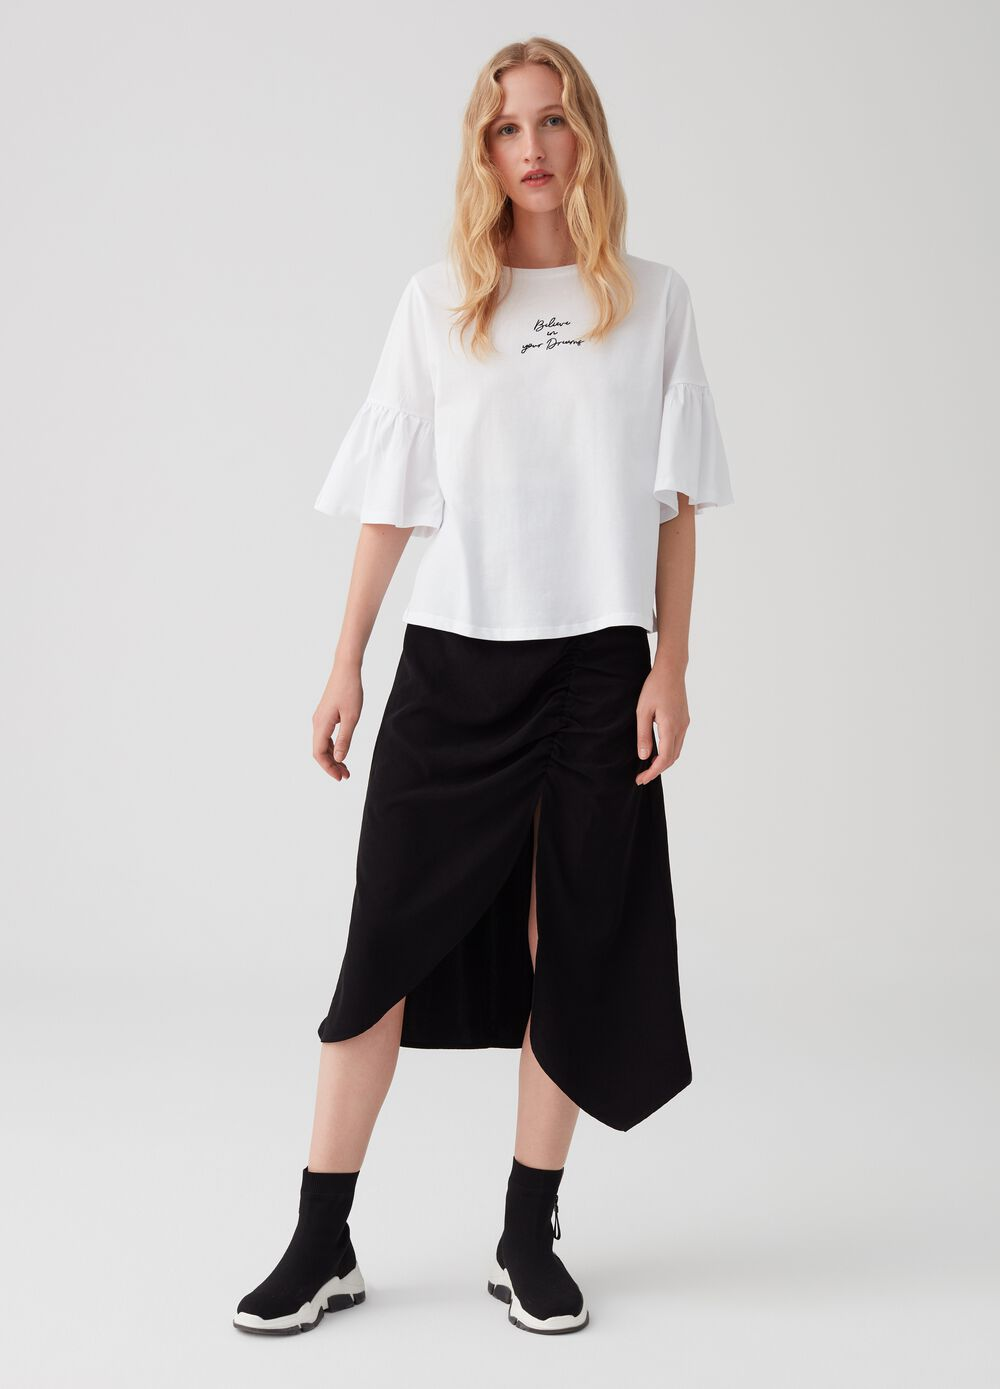 Asymmetric skirt with side gathering